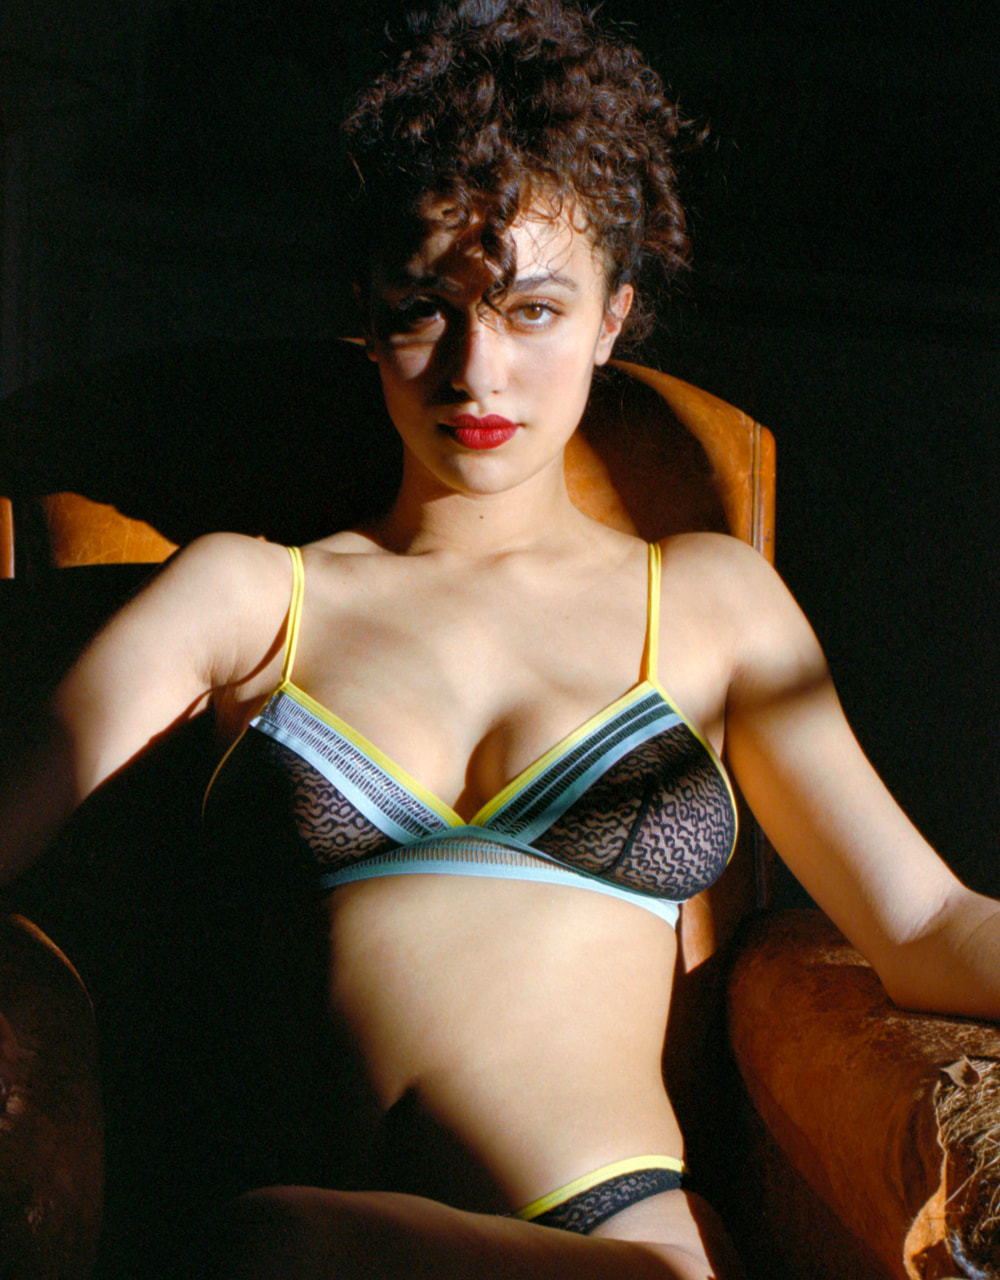 lingerie bra without underwires Imani Neon Dream 32 € Girls In Paris photo 1